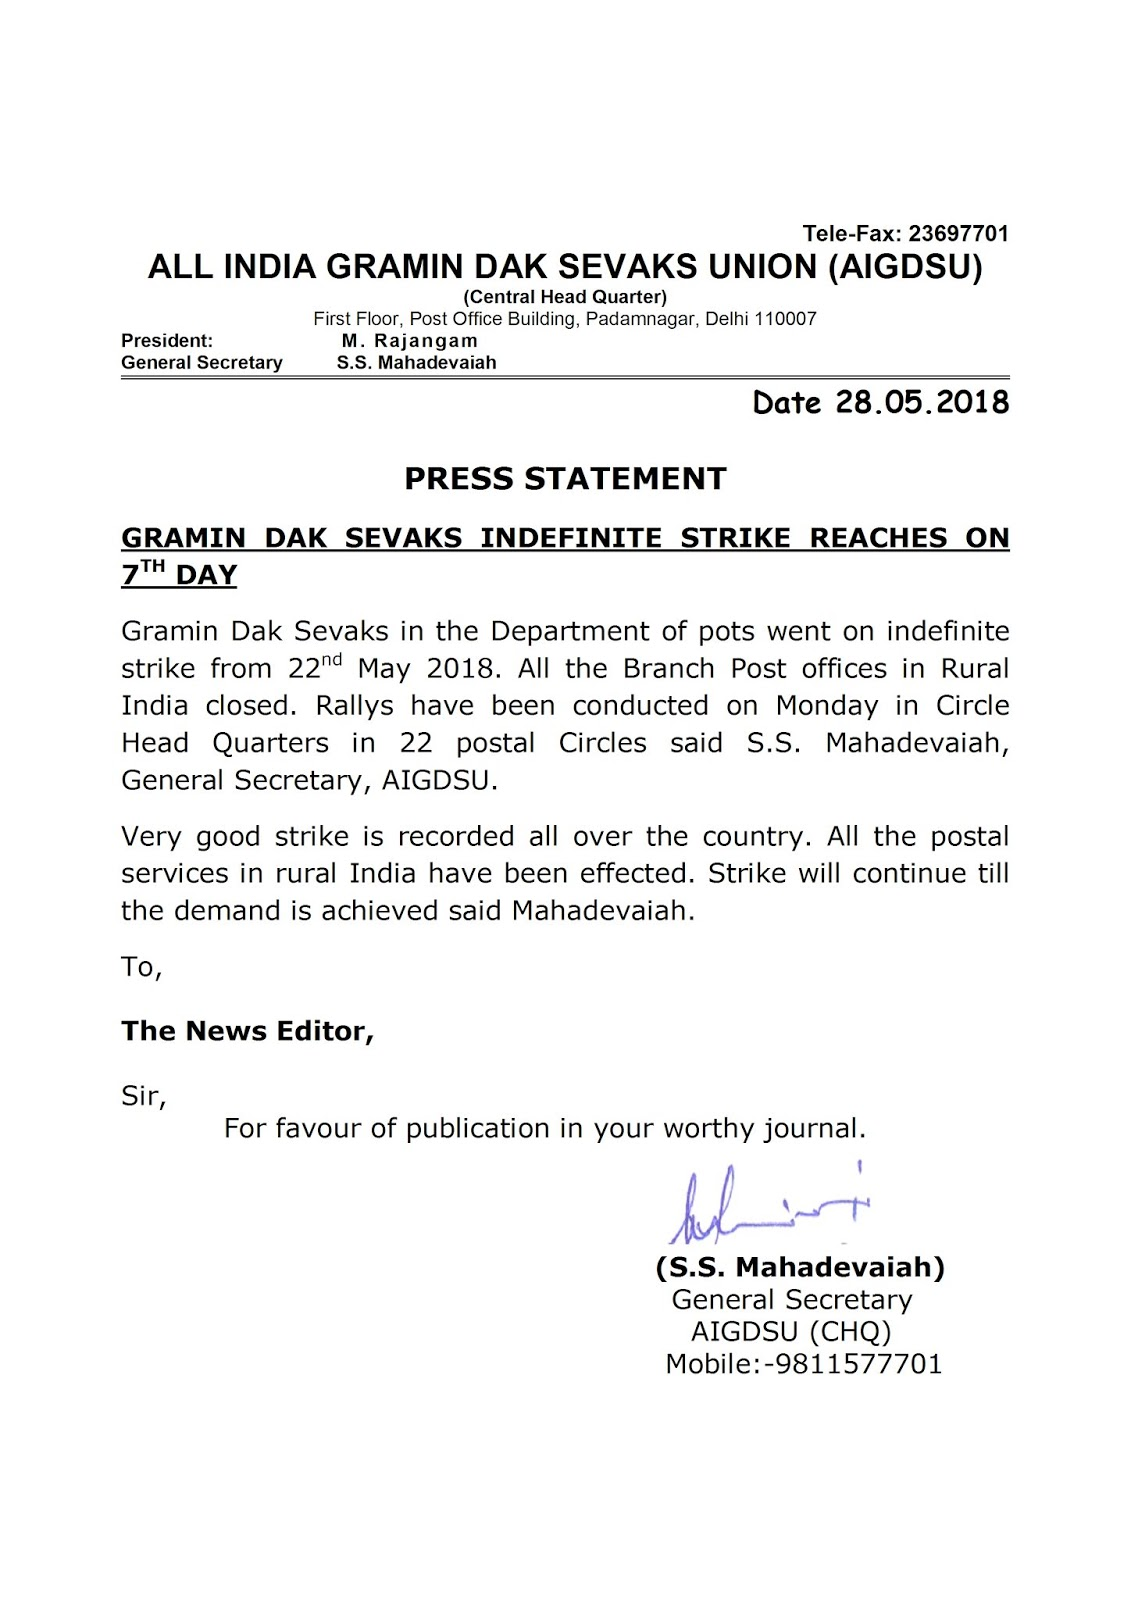 GDS Indefinite Strike : 7th Day Press Statement